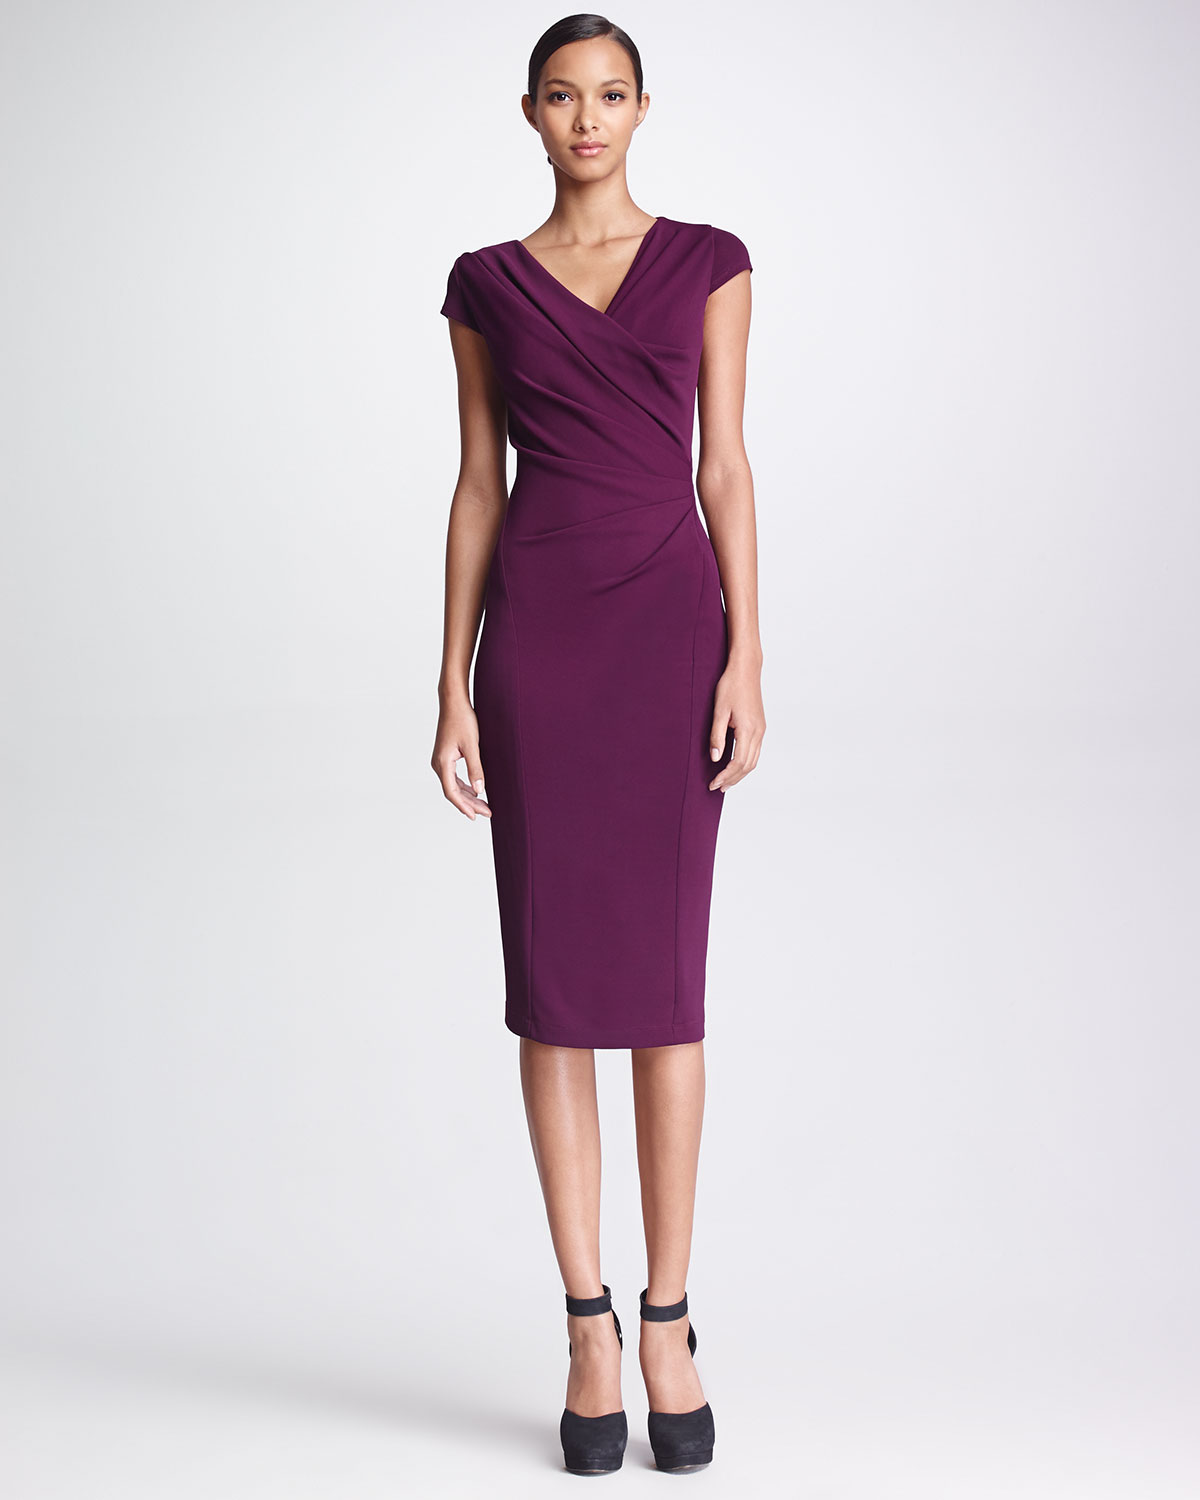 Donna karan new york gathered capsleeve dress amethyst in for Donna karen new york